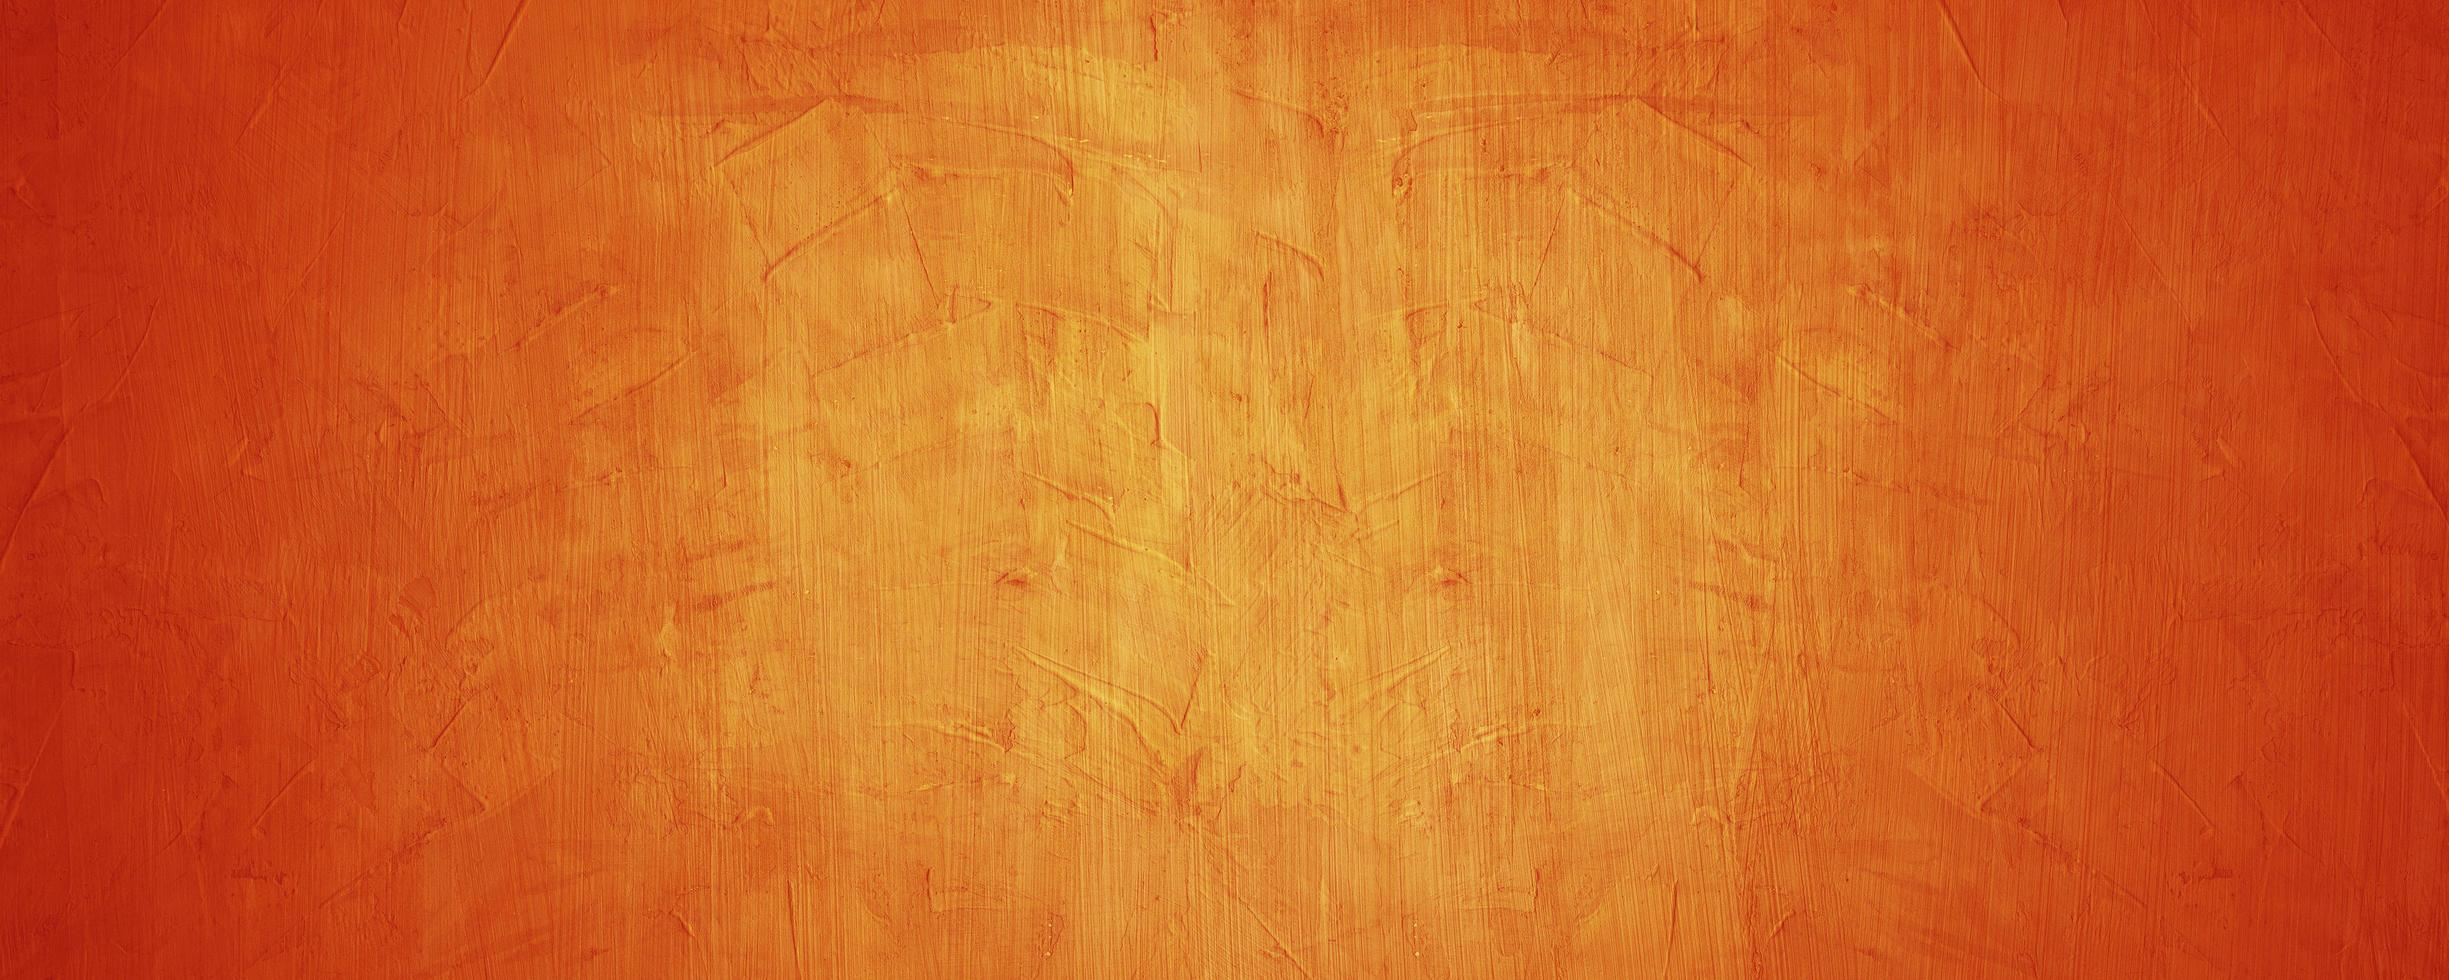 Horizontal yellow and orange grunge texture cement or concrete wall banner blank background photo